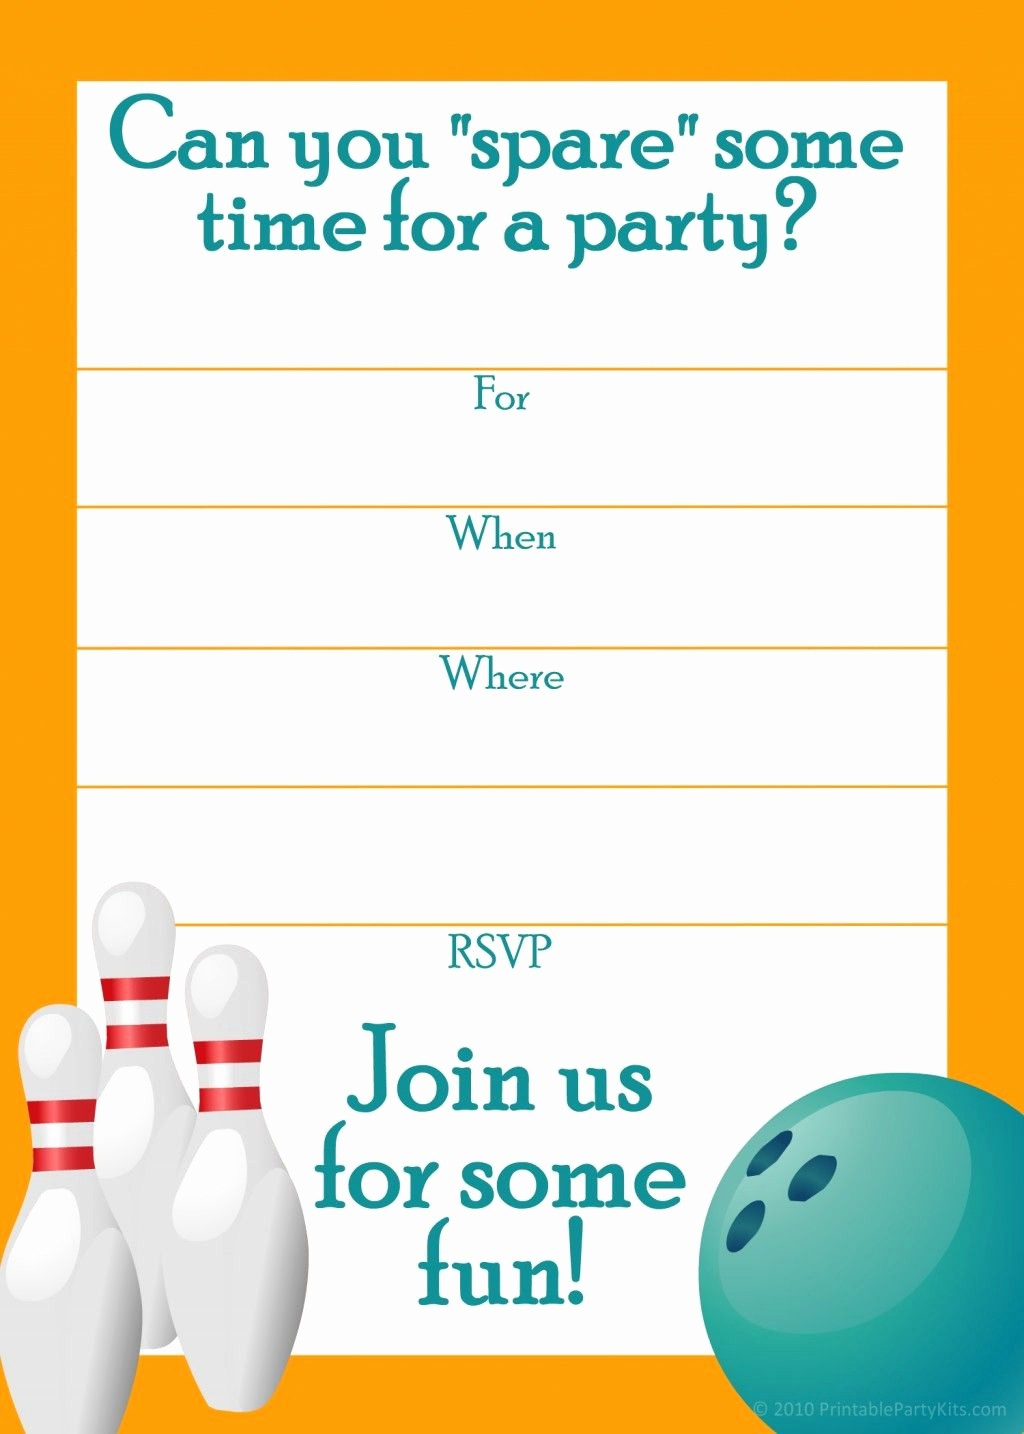 Free Printable Party Invitations Templates Awesome Free Printable Sports Birthday Party Invitations Templates